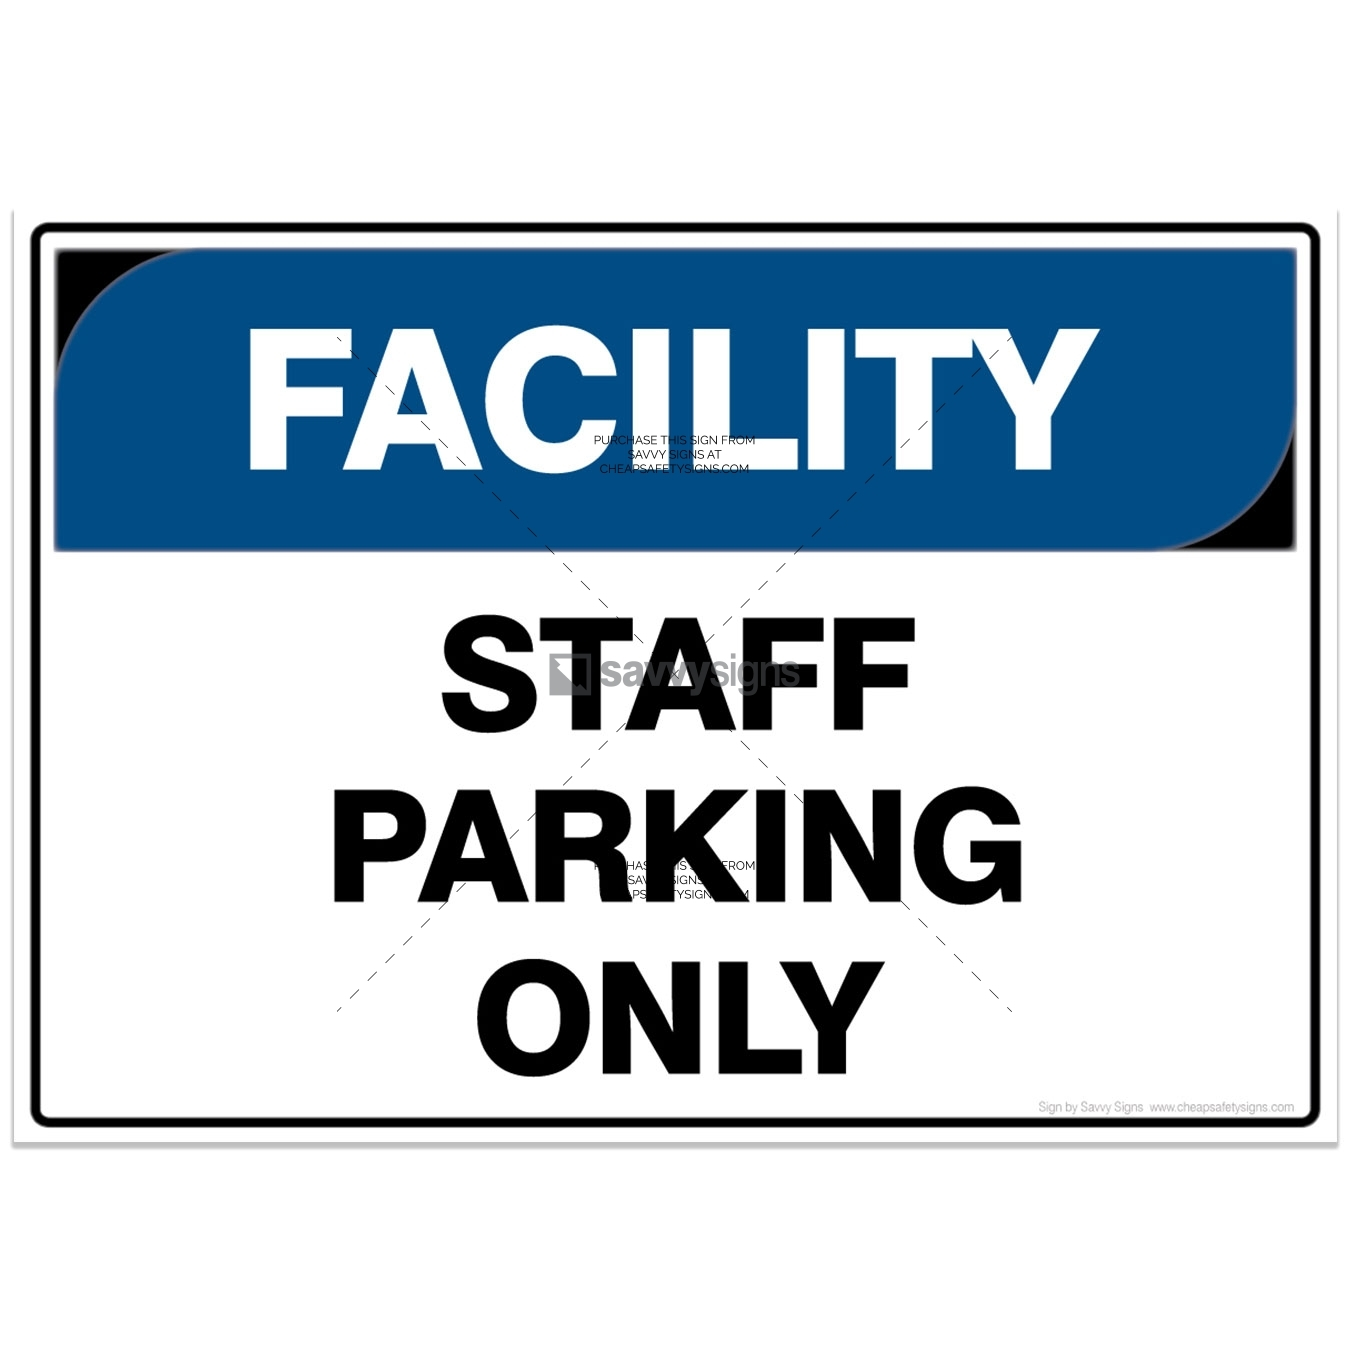 SSFAC3024-FACILITY-Workplace-Safety-Signs_Savvy-Signs_v4